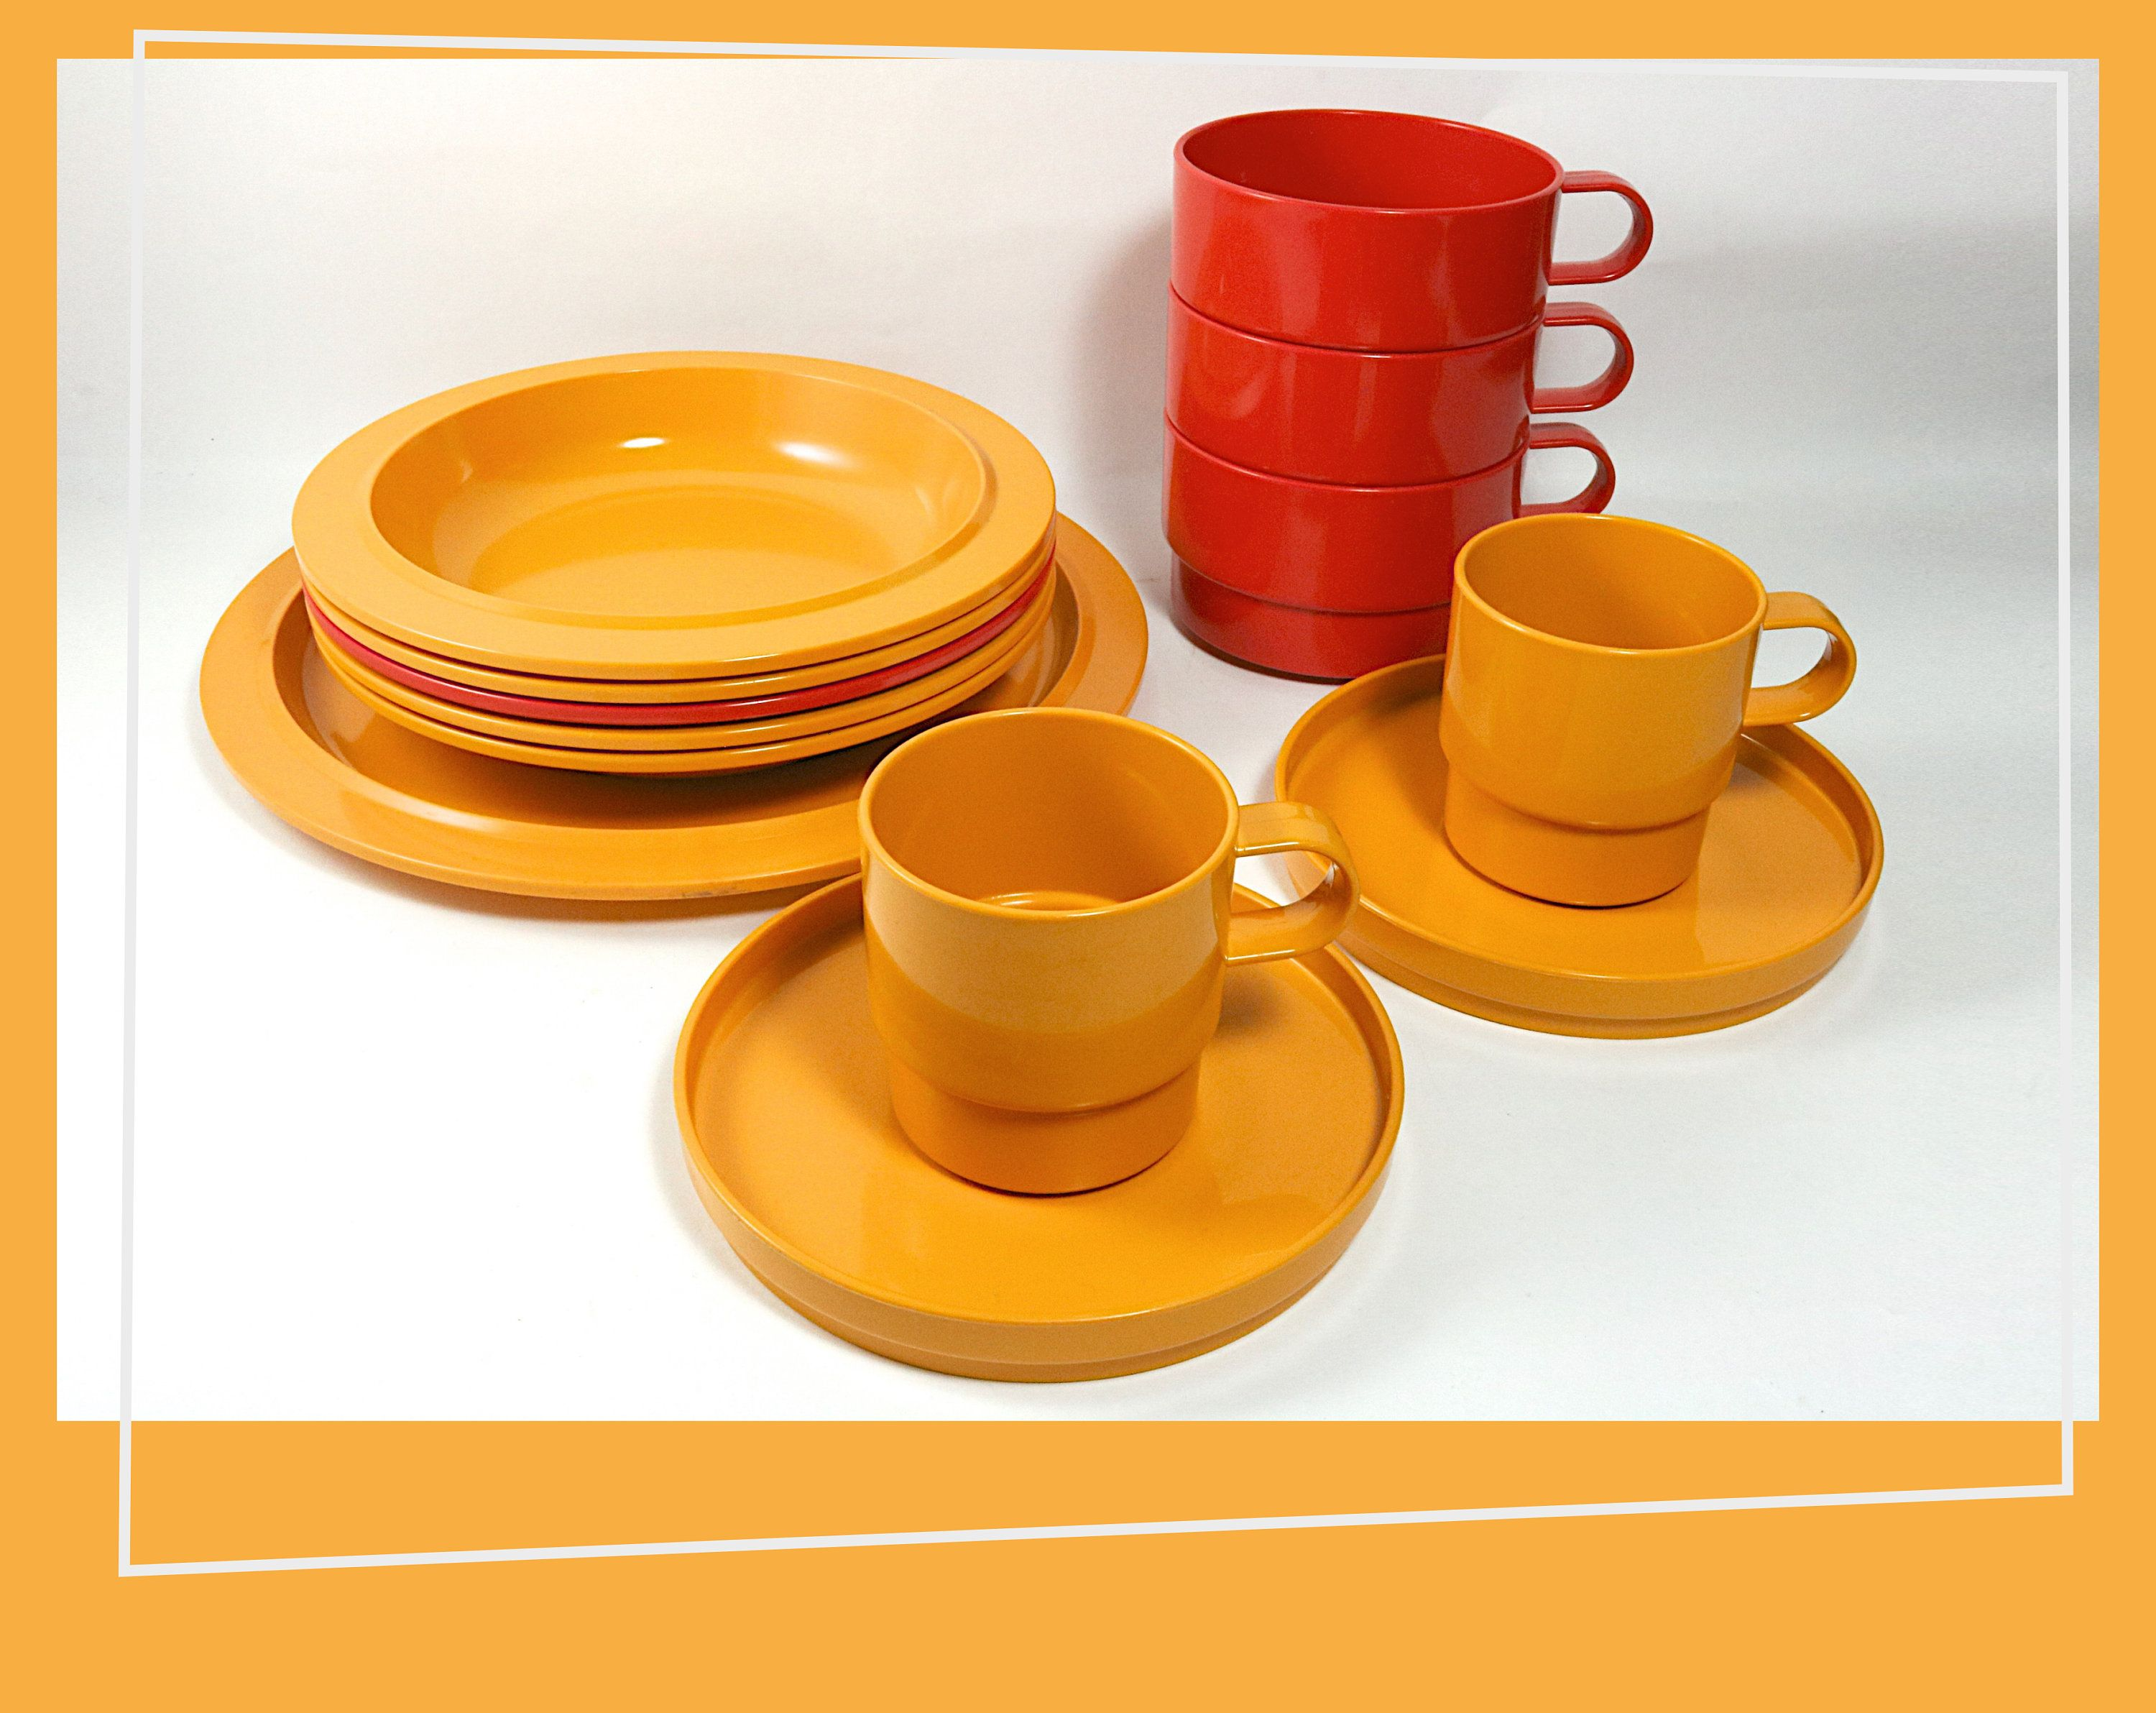 12 Piece Camping Set Rosti Mepal Soup Bowls Cups Saucers And